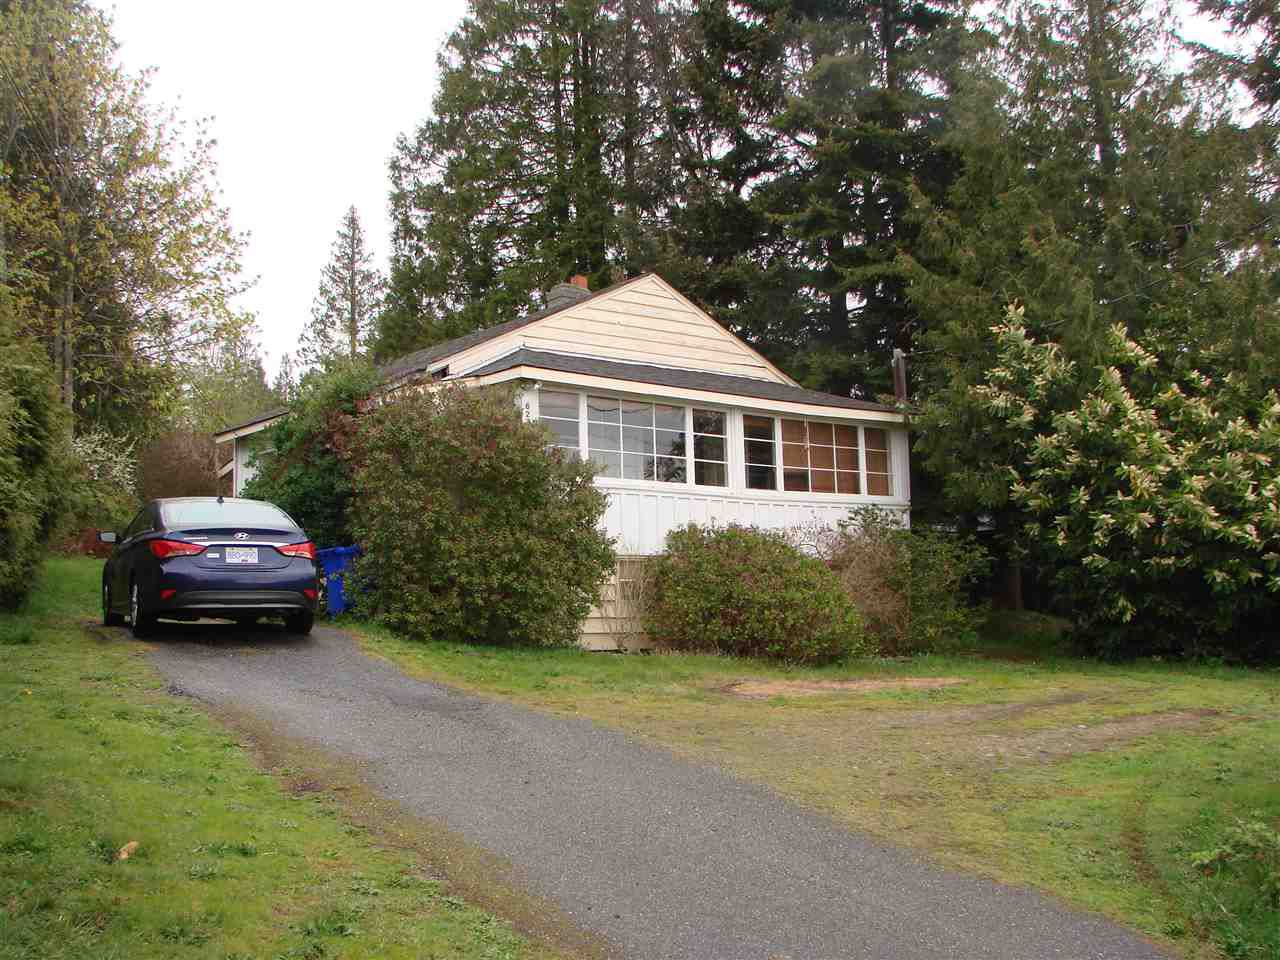 Main Photo: 6236 SUNSHINE COAST Highway in Sechelt: Sechelt District House for sale (Sunshine Coast)  : MLS®# R2054957